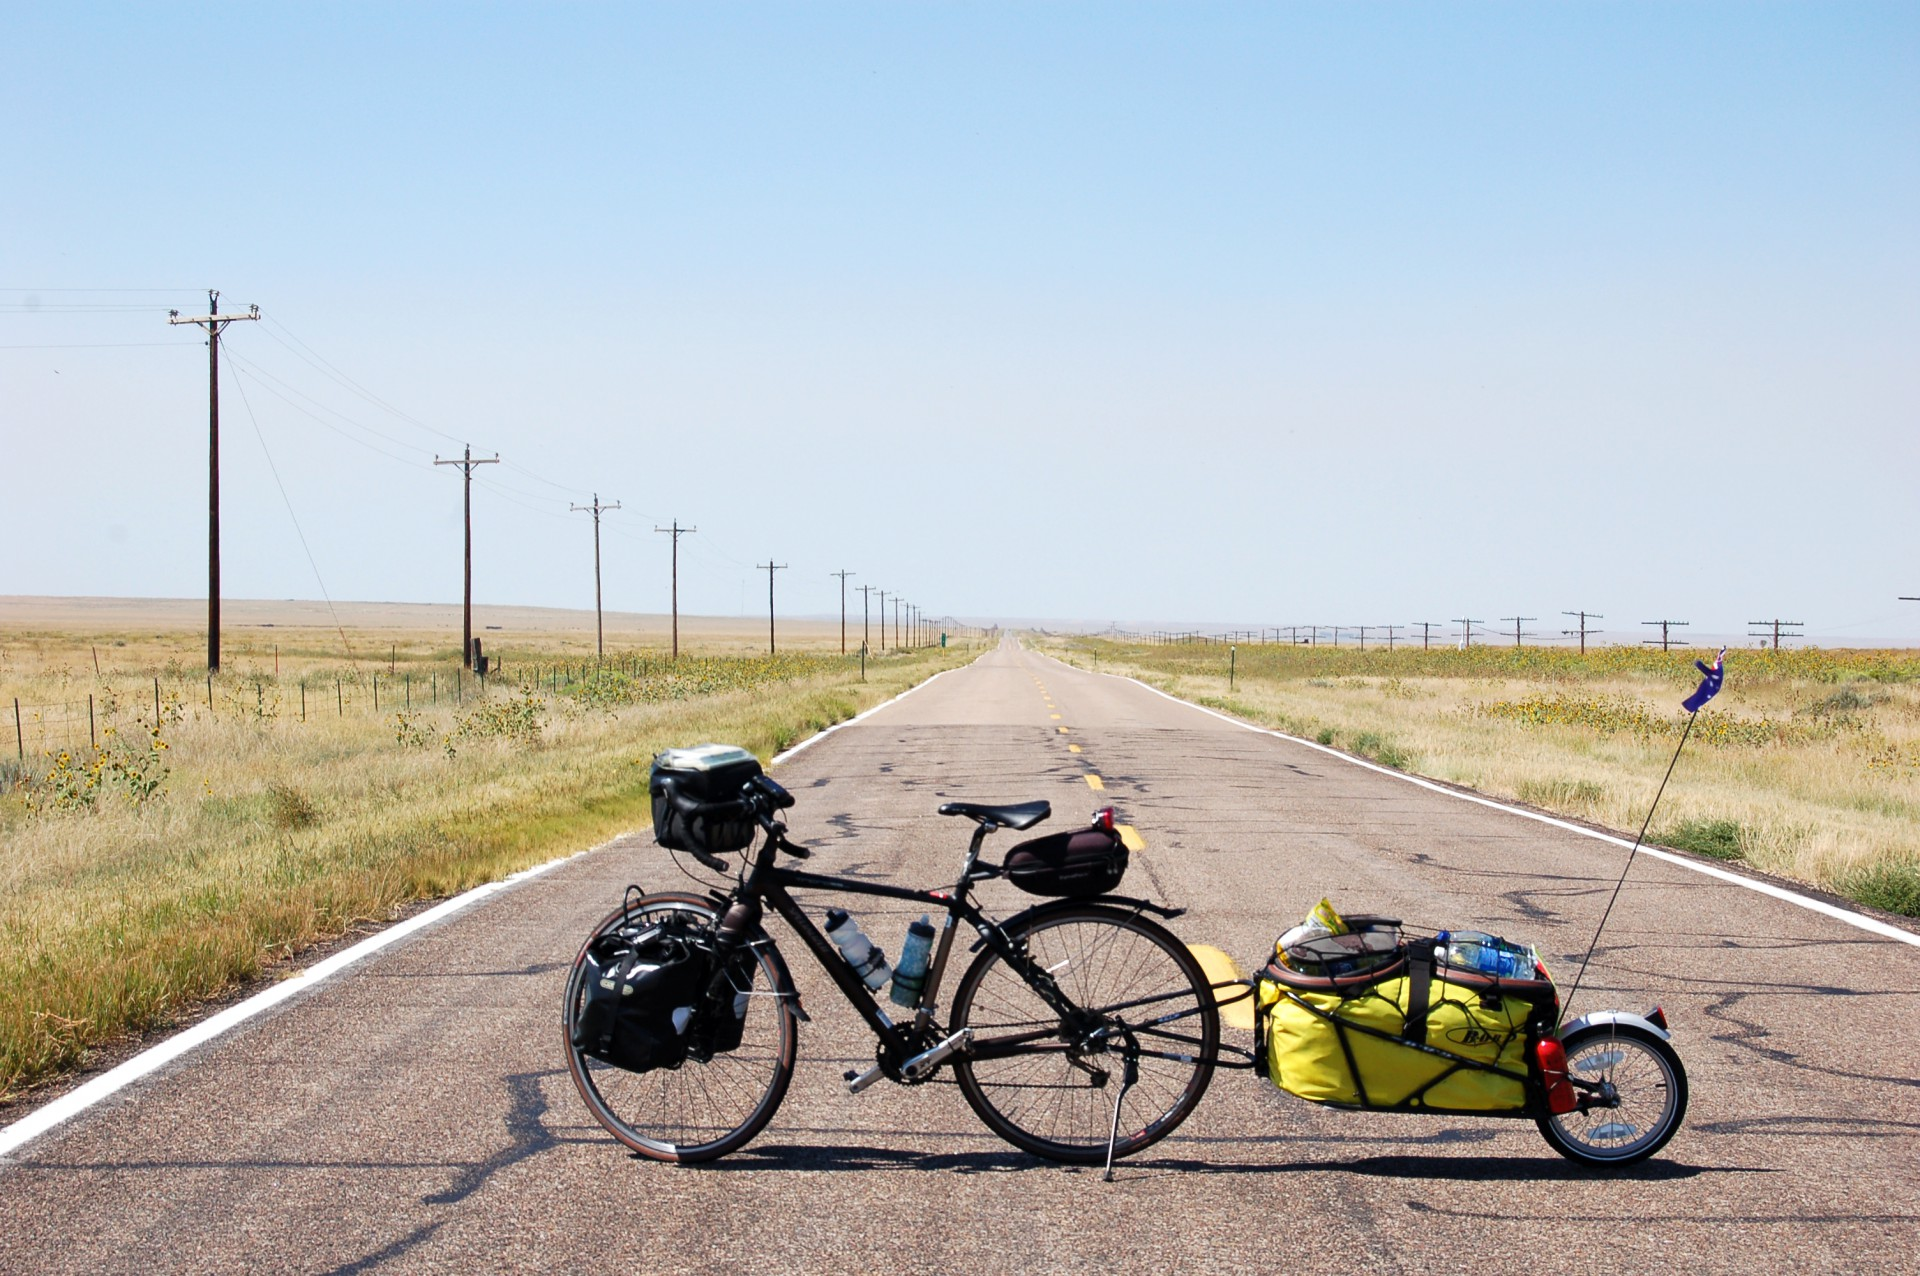 DAY 40: Ride Across the USA